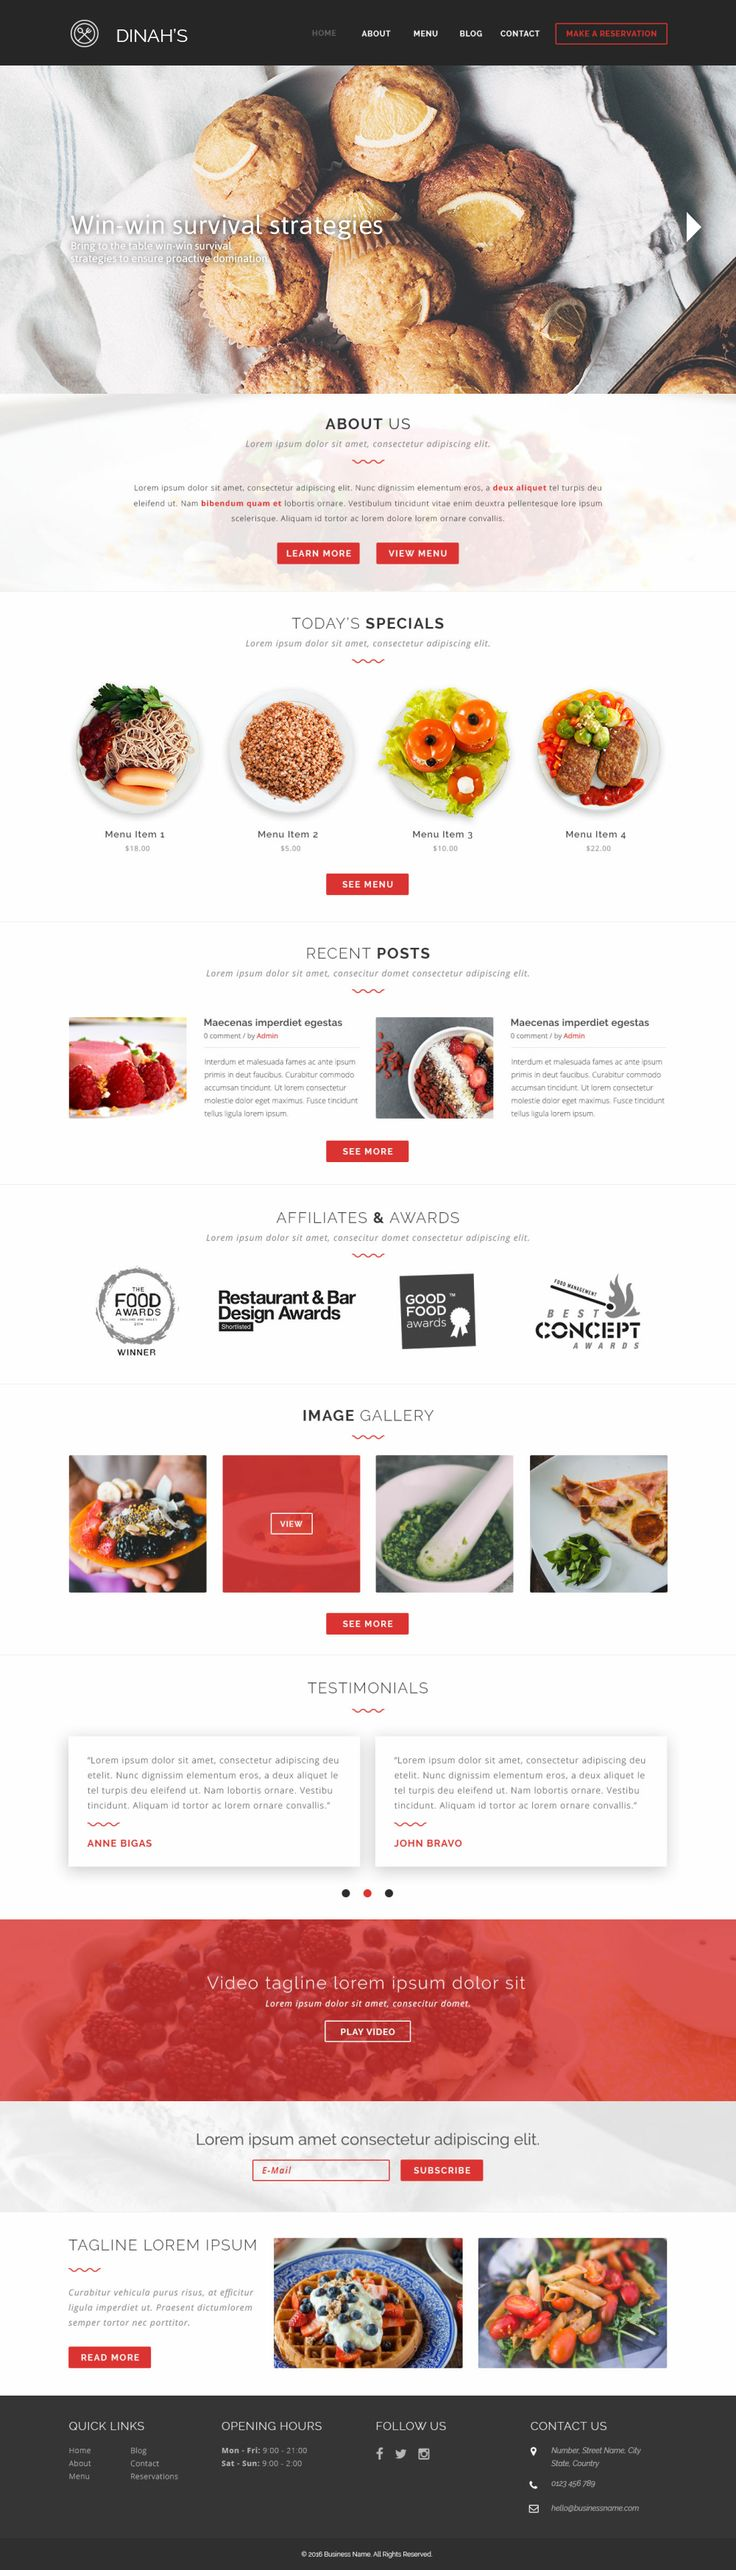 Check out our web design for cafe and restaurant business. If you're looking for a website for your business at an affordable price, please visit http://AffordableWebsites.ca  #website #webdesign #webdevelopment #food